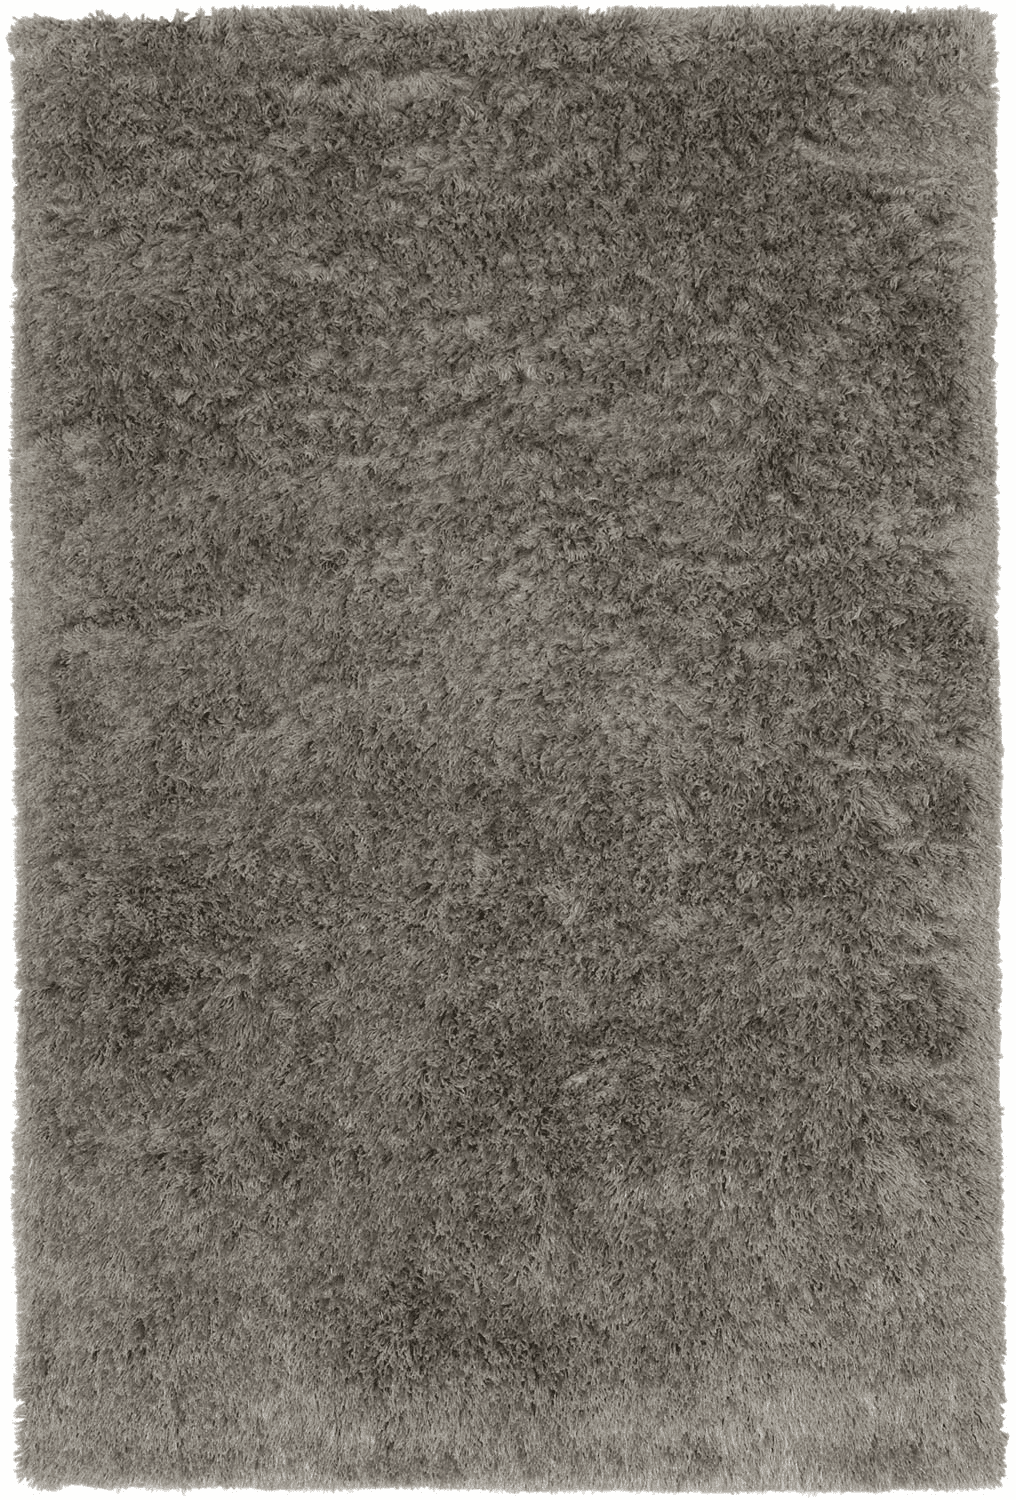 Hand Tufted Grey Rug